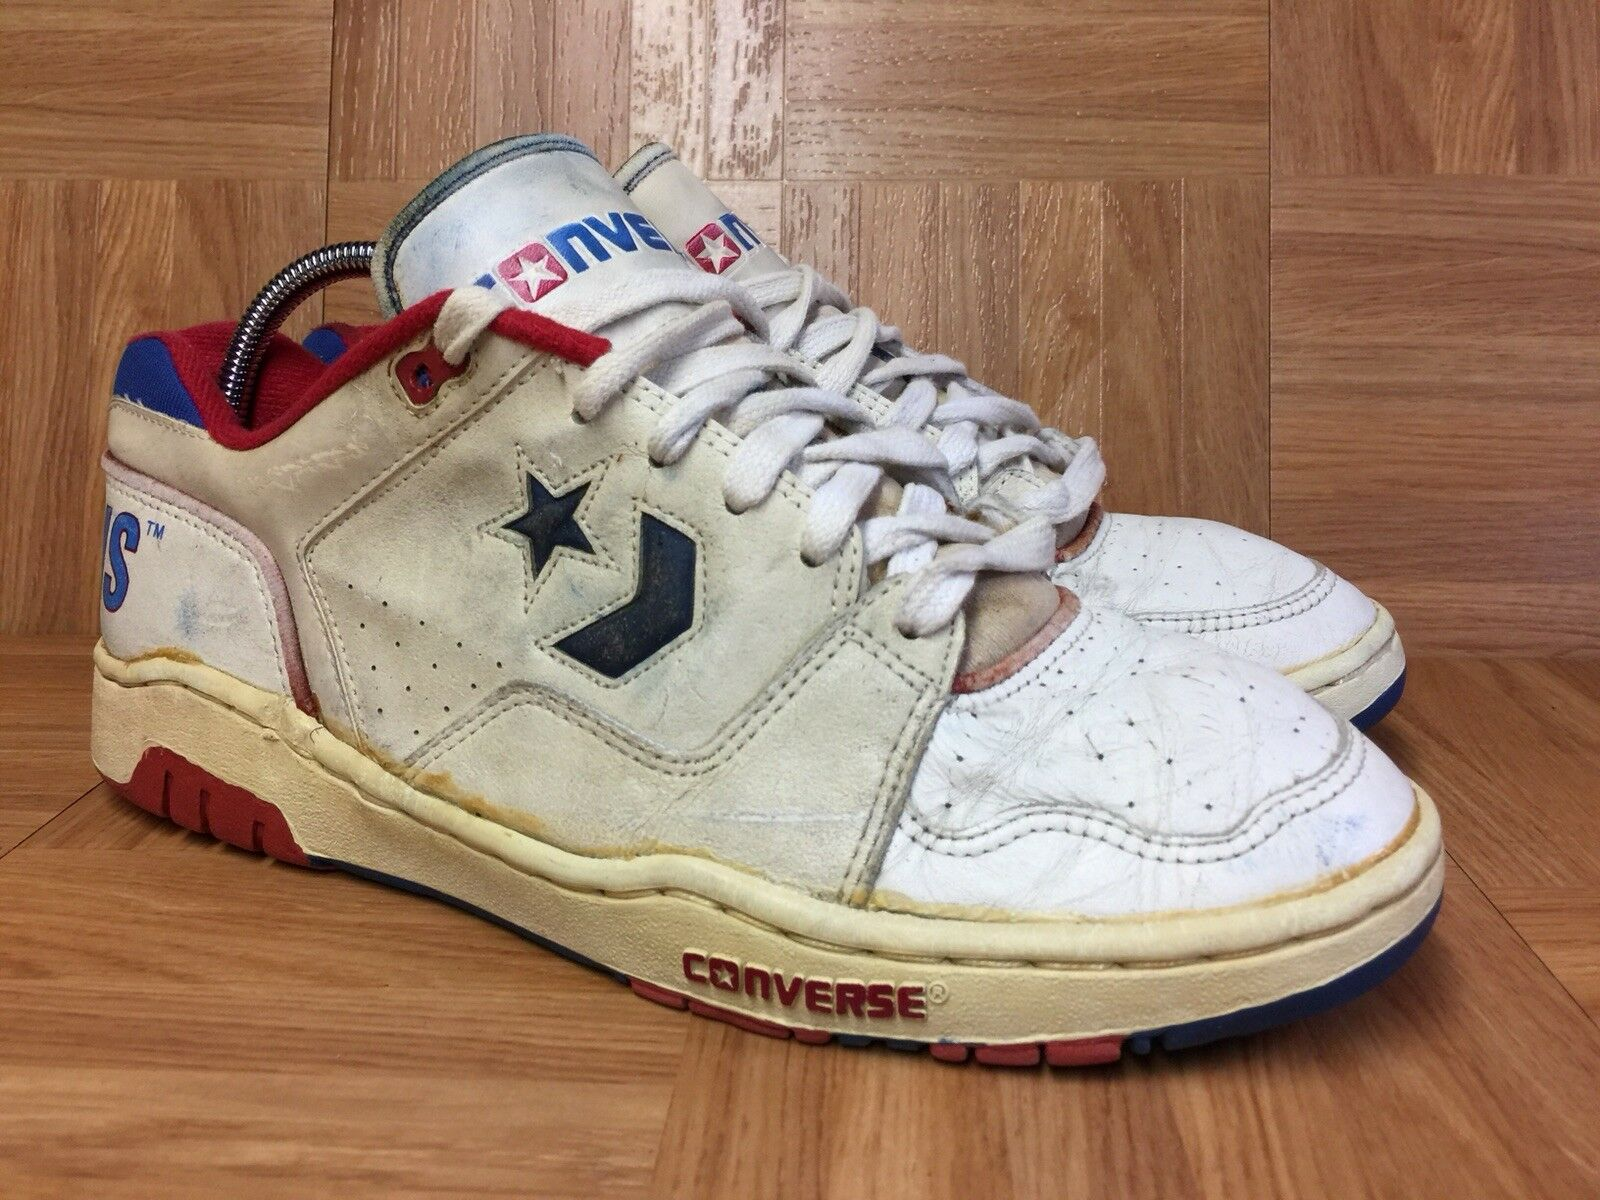 Vintage Converse All All All Star Player Basketball scarpe 9.5 1980's Detroit Pistons 7f350b